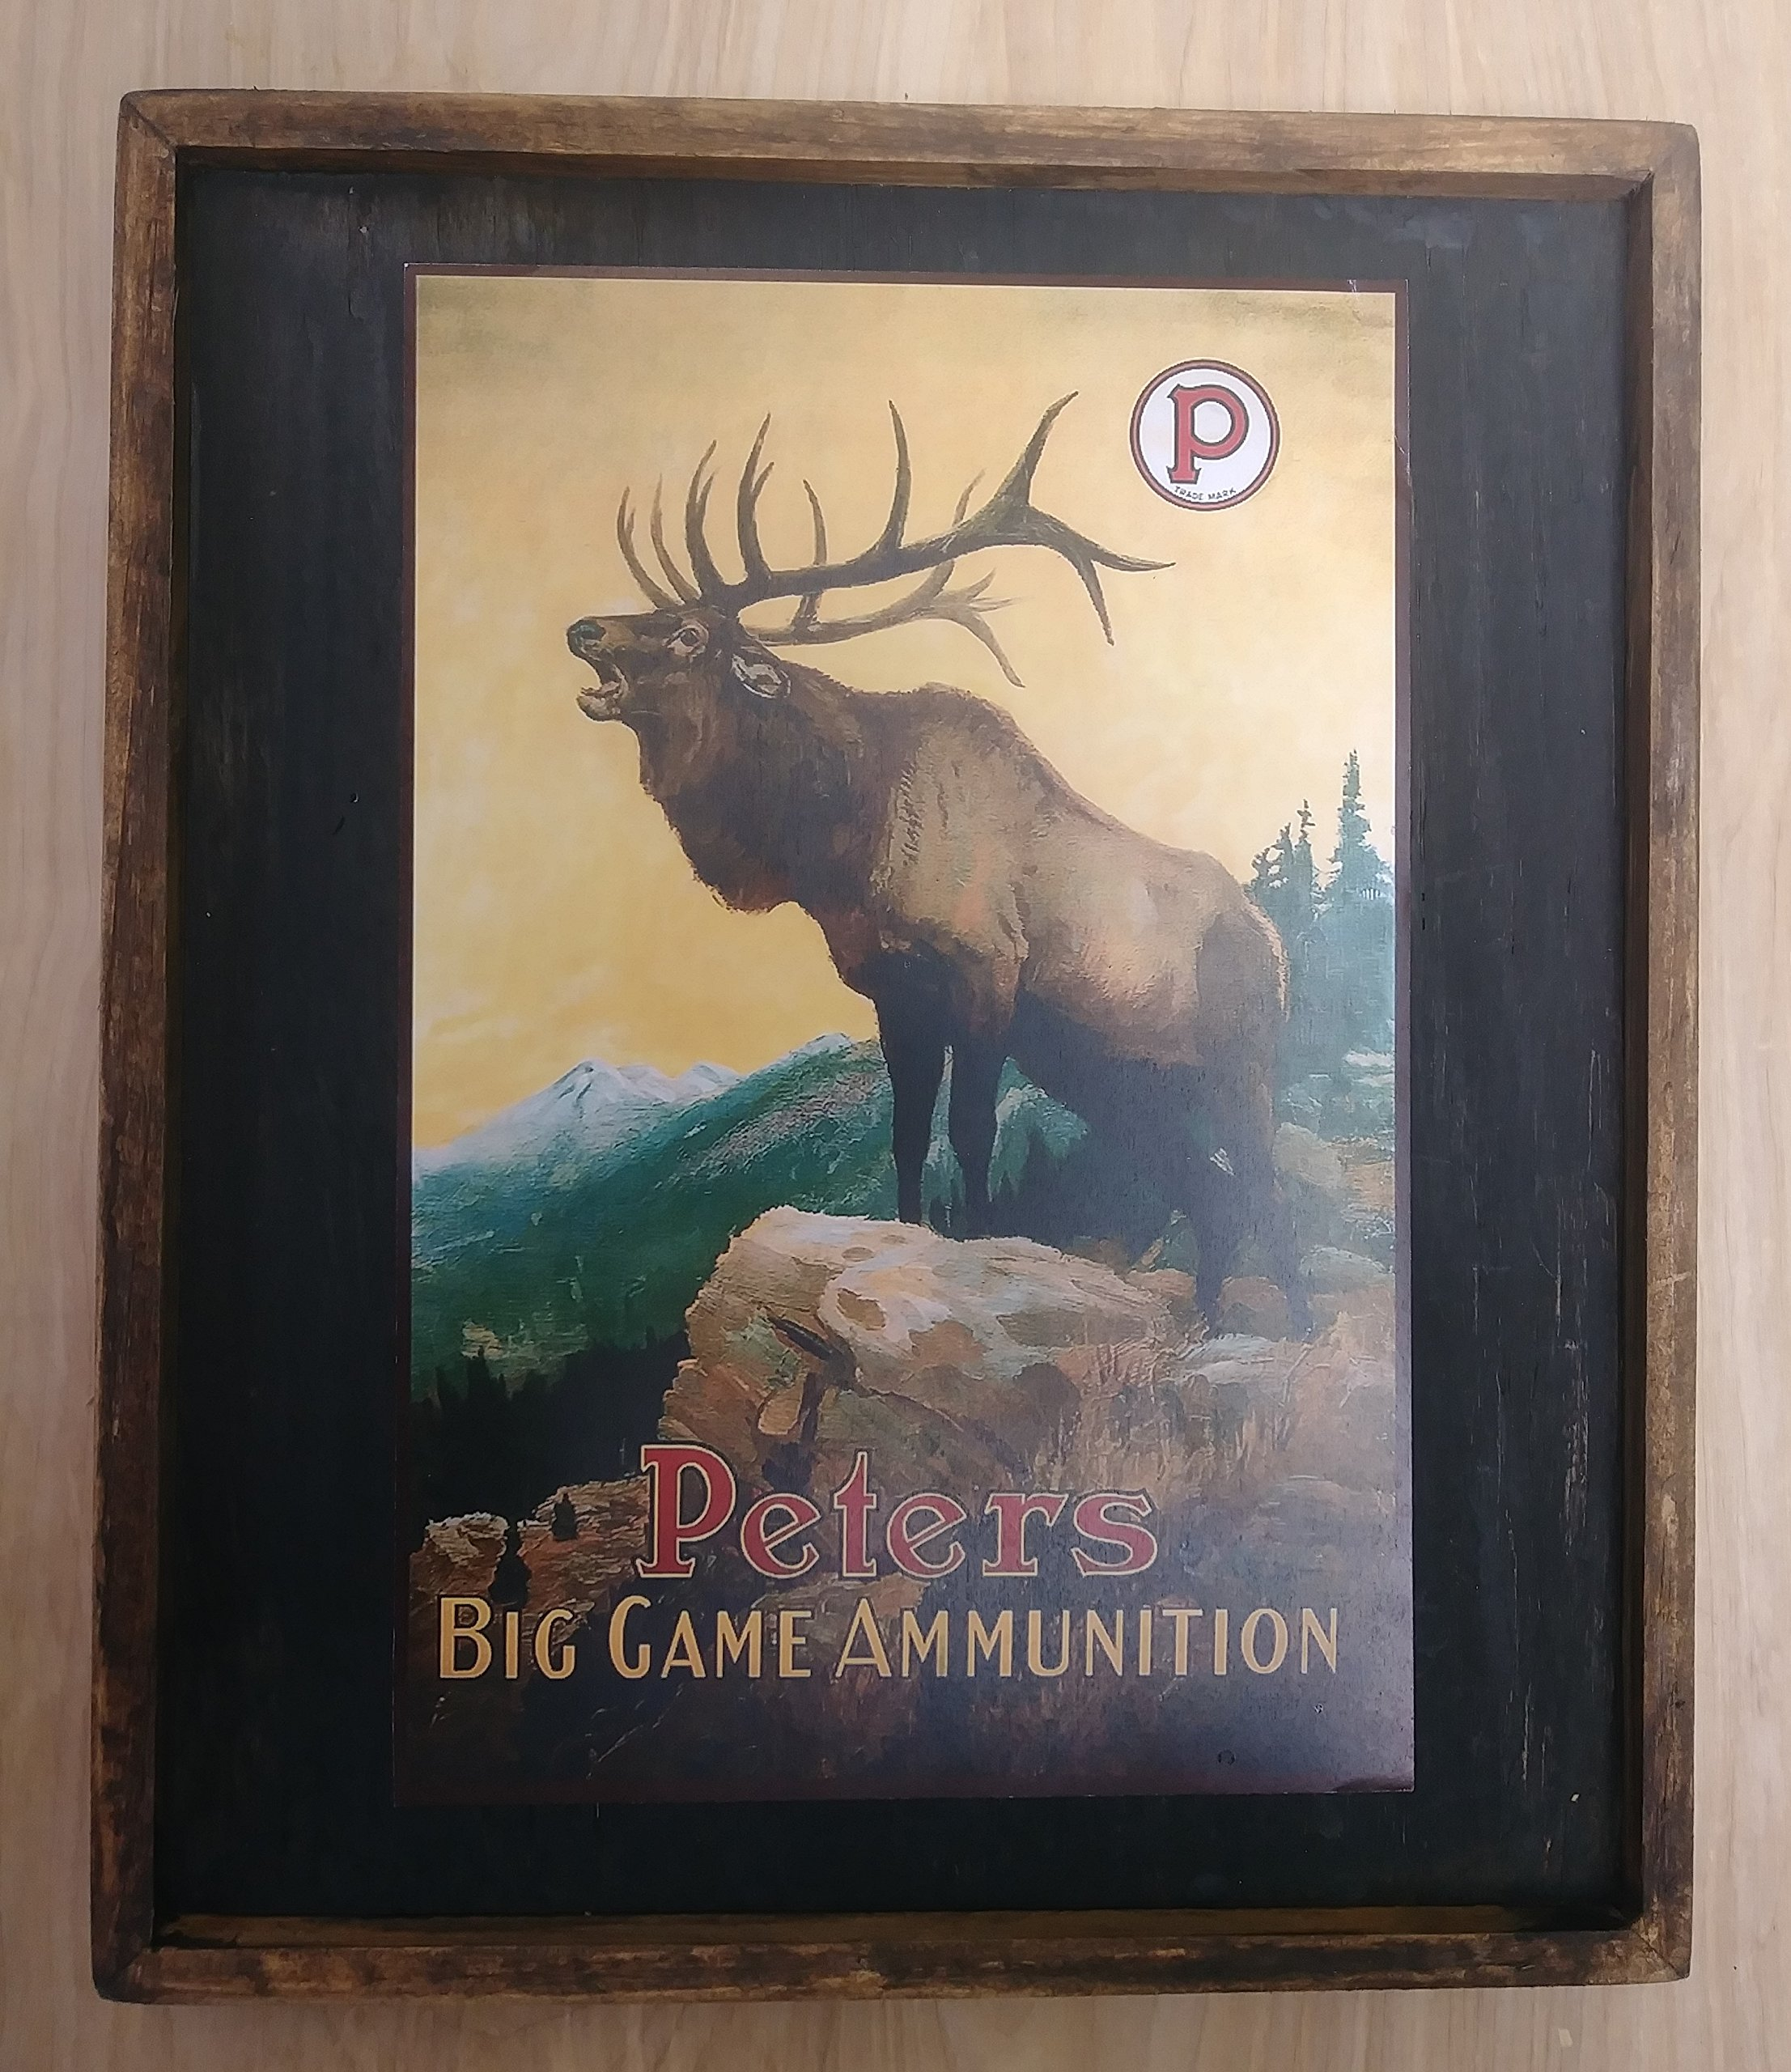 PETERS BIG GAME AMMUNITION - Wooden Sign